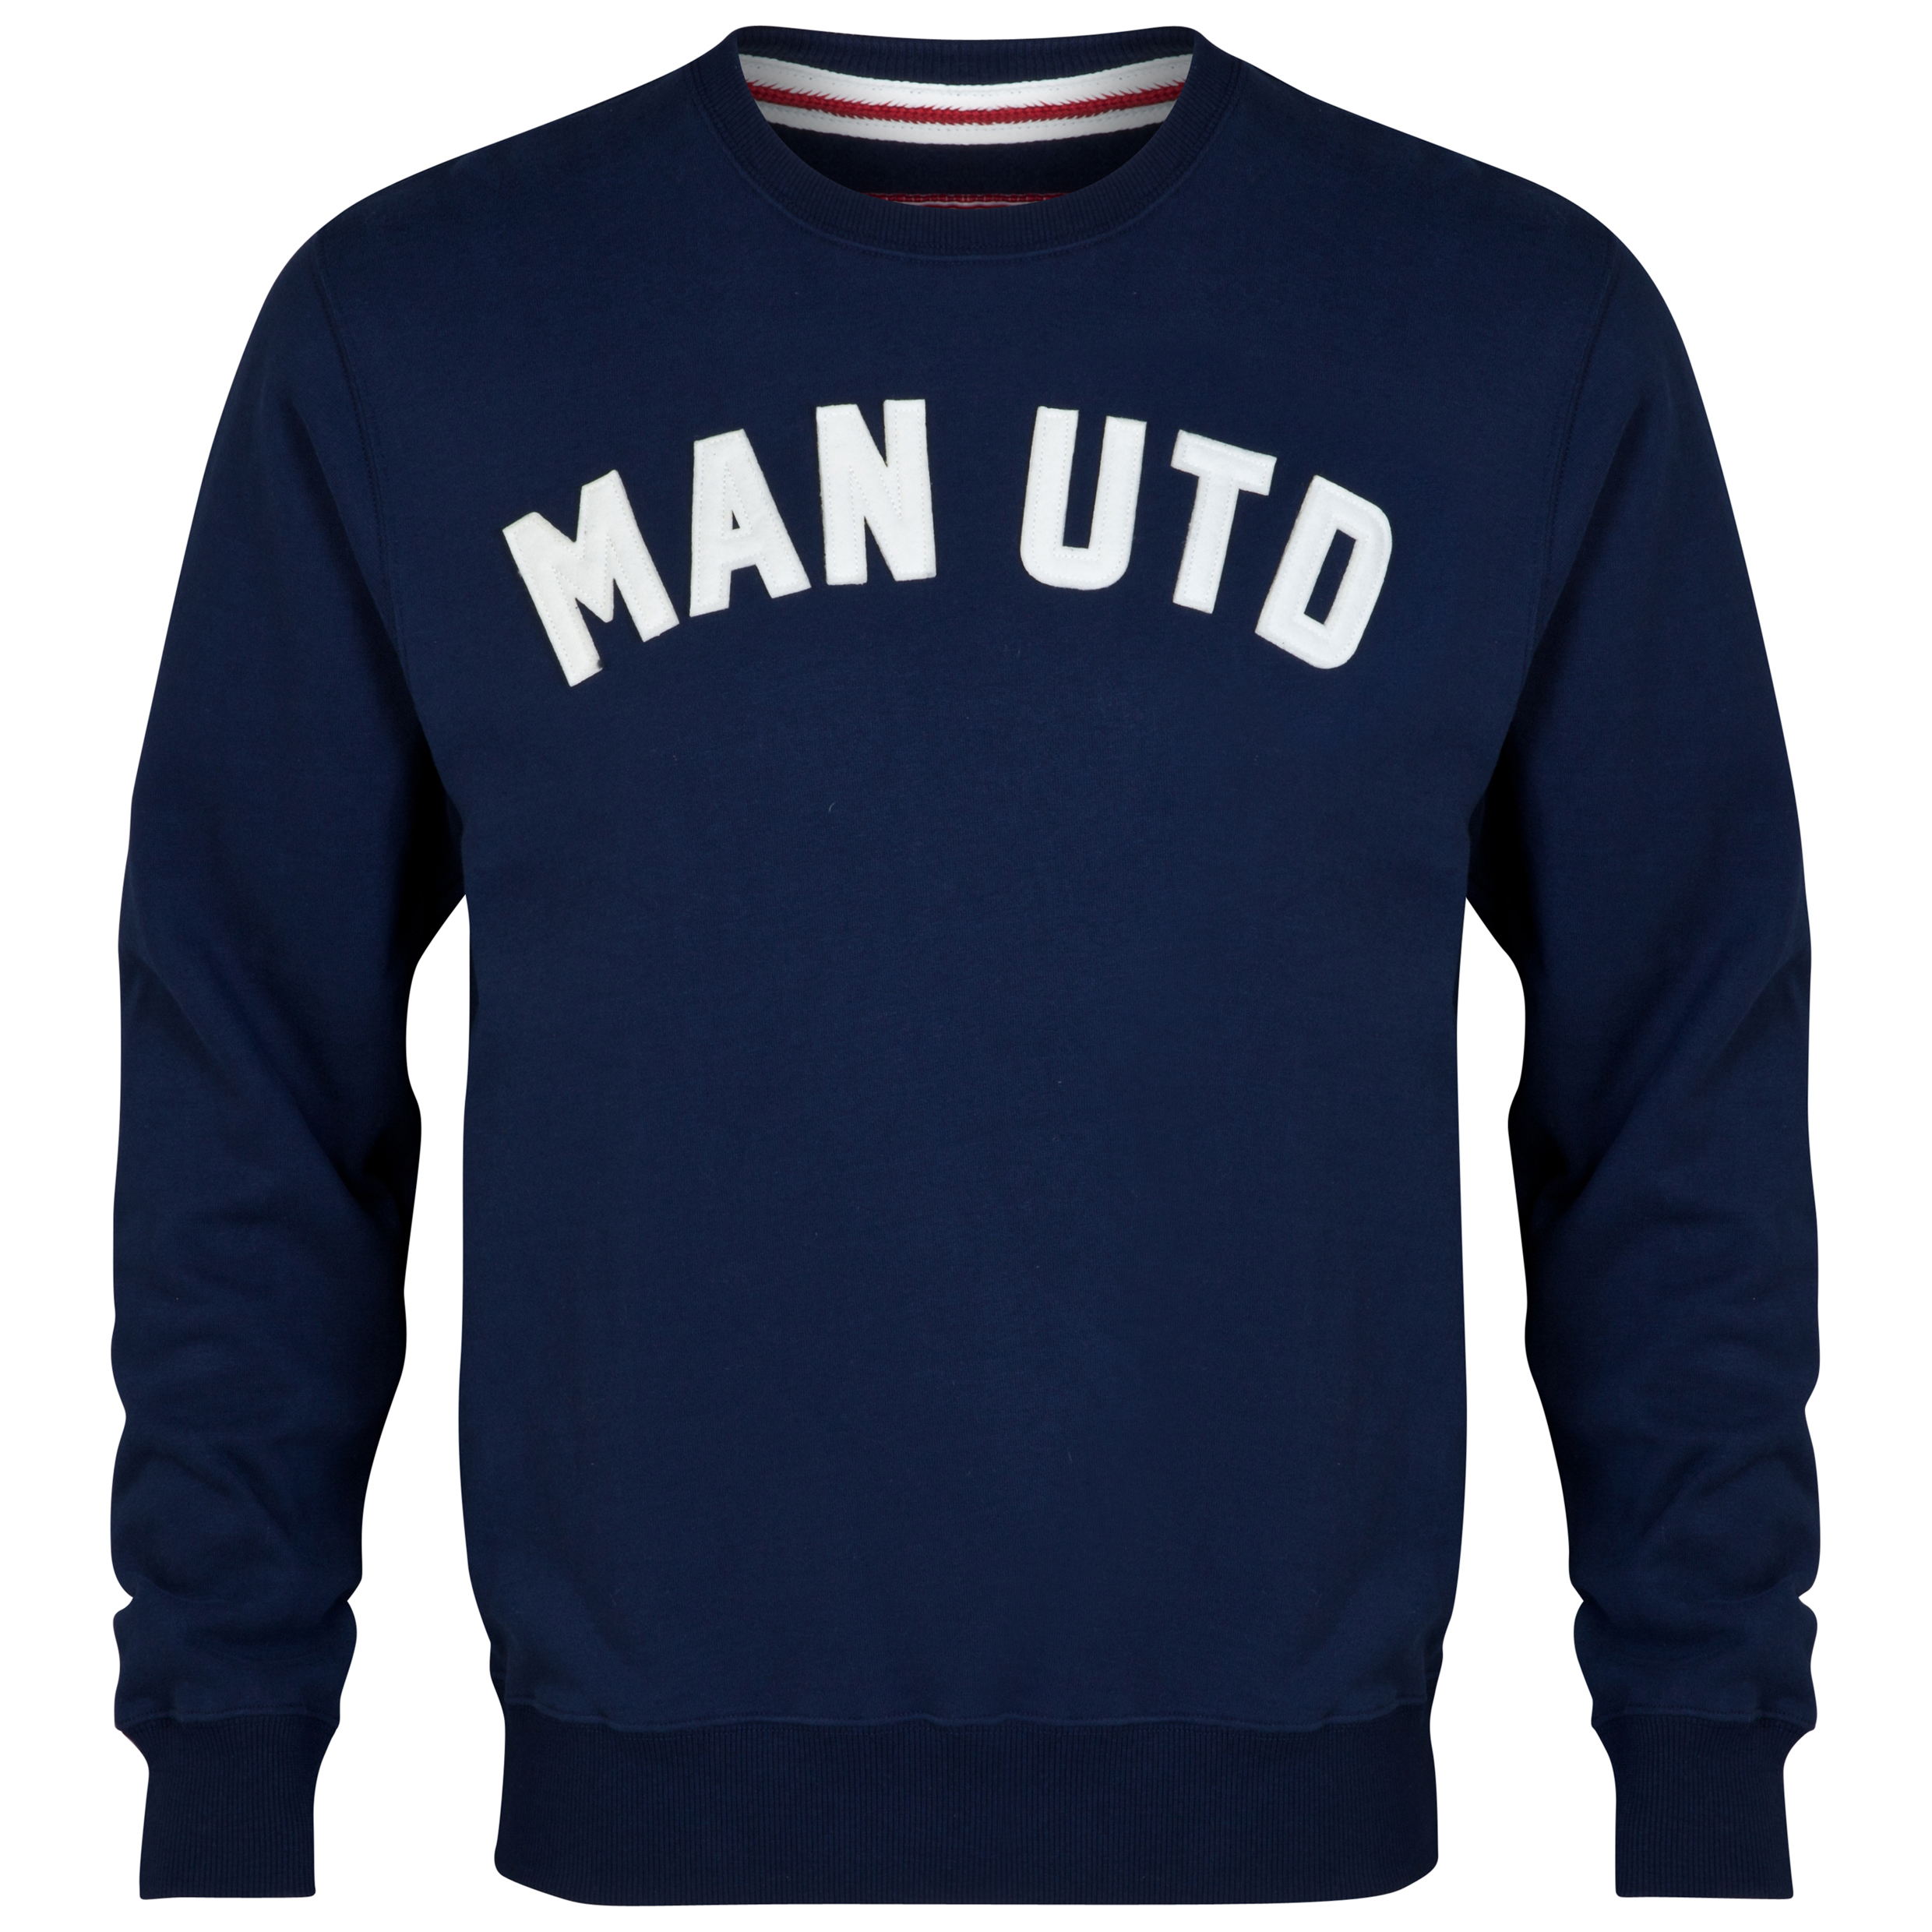 Manchester United Heritage Devil Crew Neck Sweater - Mens Navy